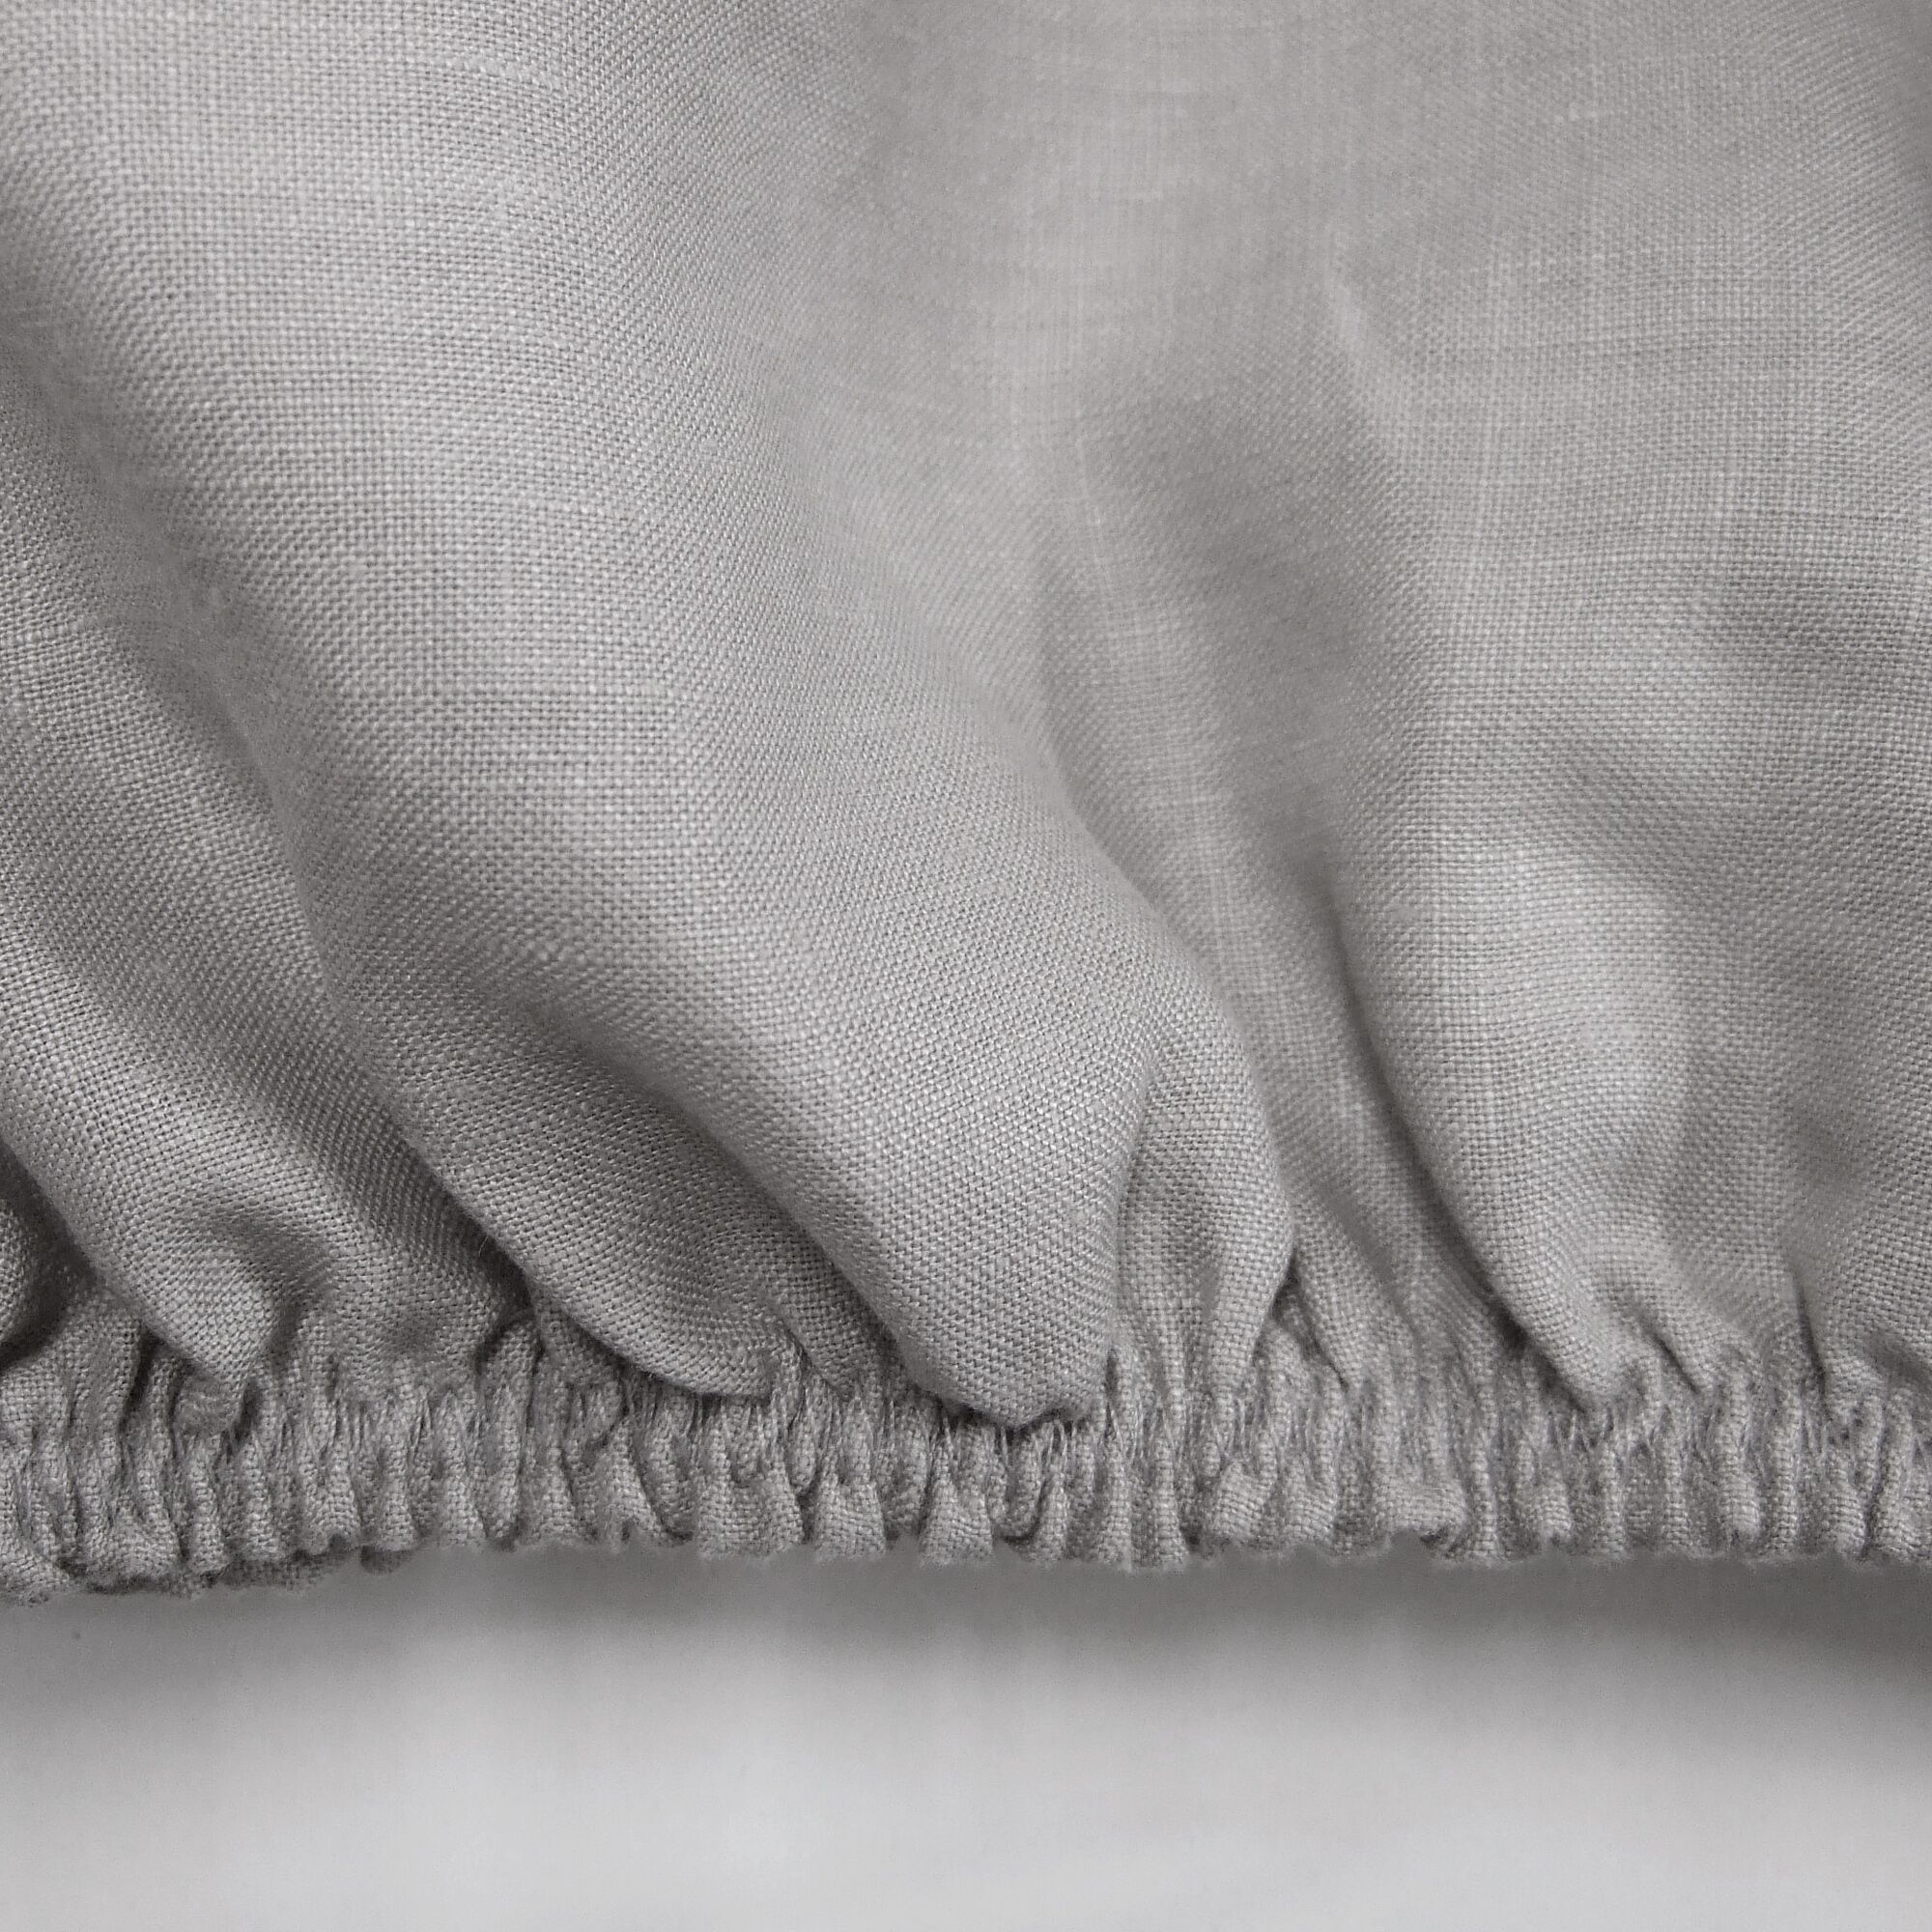 Linen Fitted Sheet Size: King, Color: Warm Gray